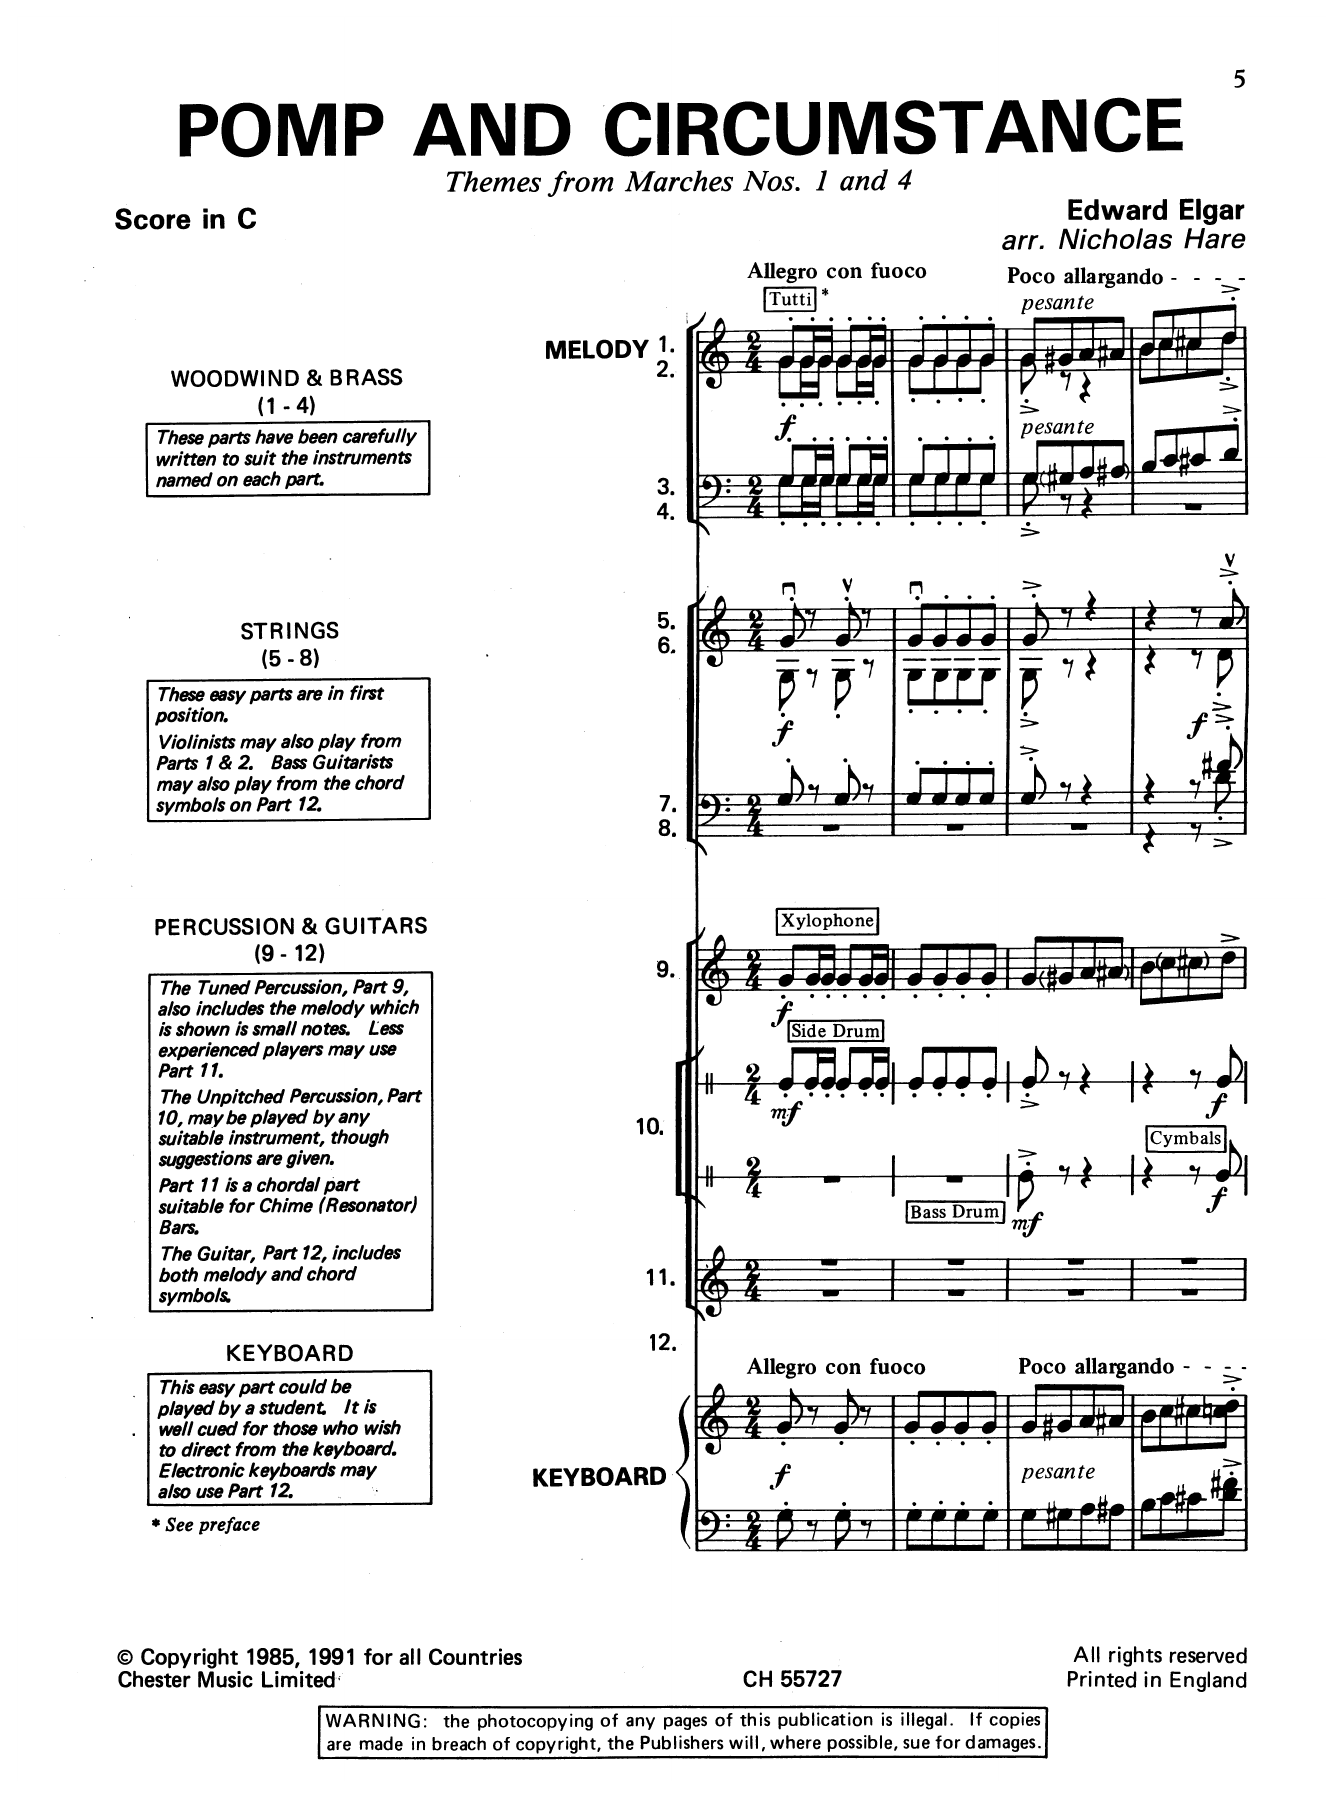 Edward Elgar: Pomp And Circumstance (Themes From Marches Nos. 1 And 4)